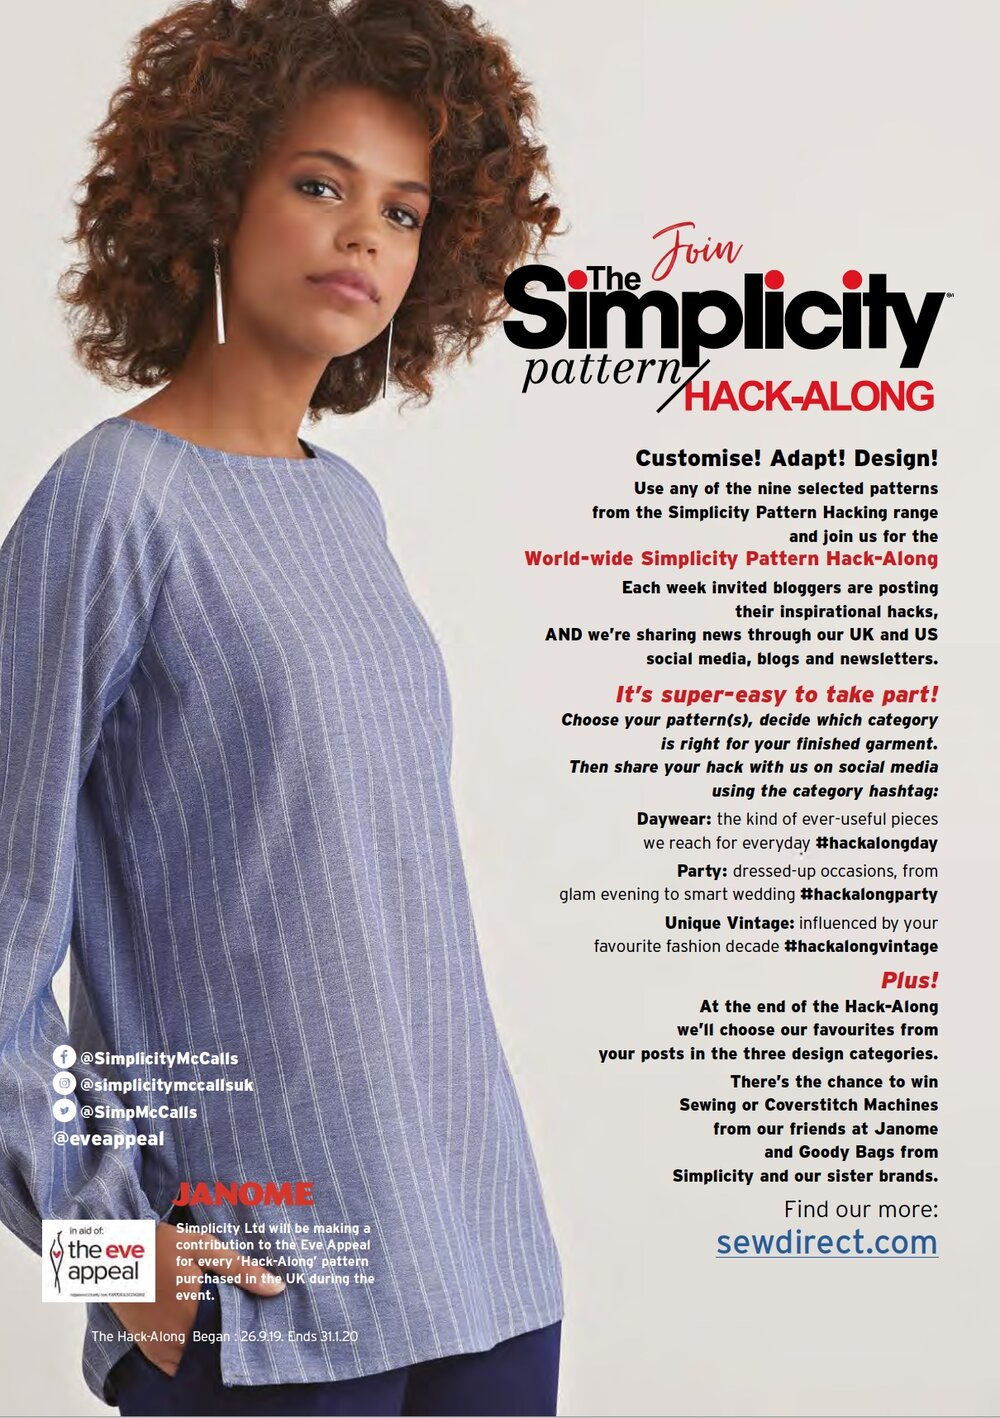 Sew Direct - New home to Simplicity, Vogue, McCalls, Kwik Sew, Butterick, NewLook and Burda